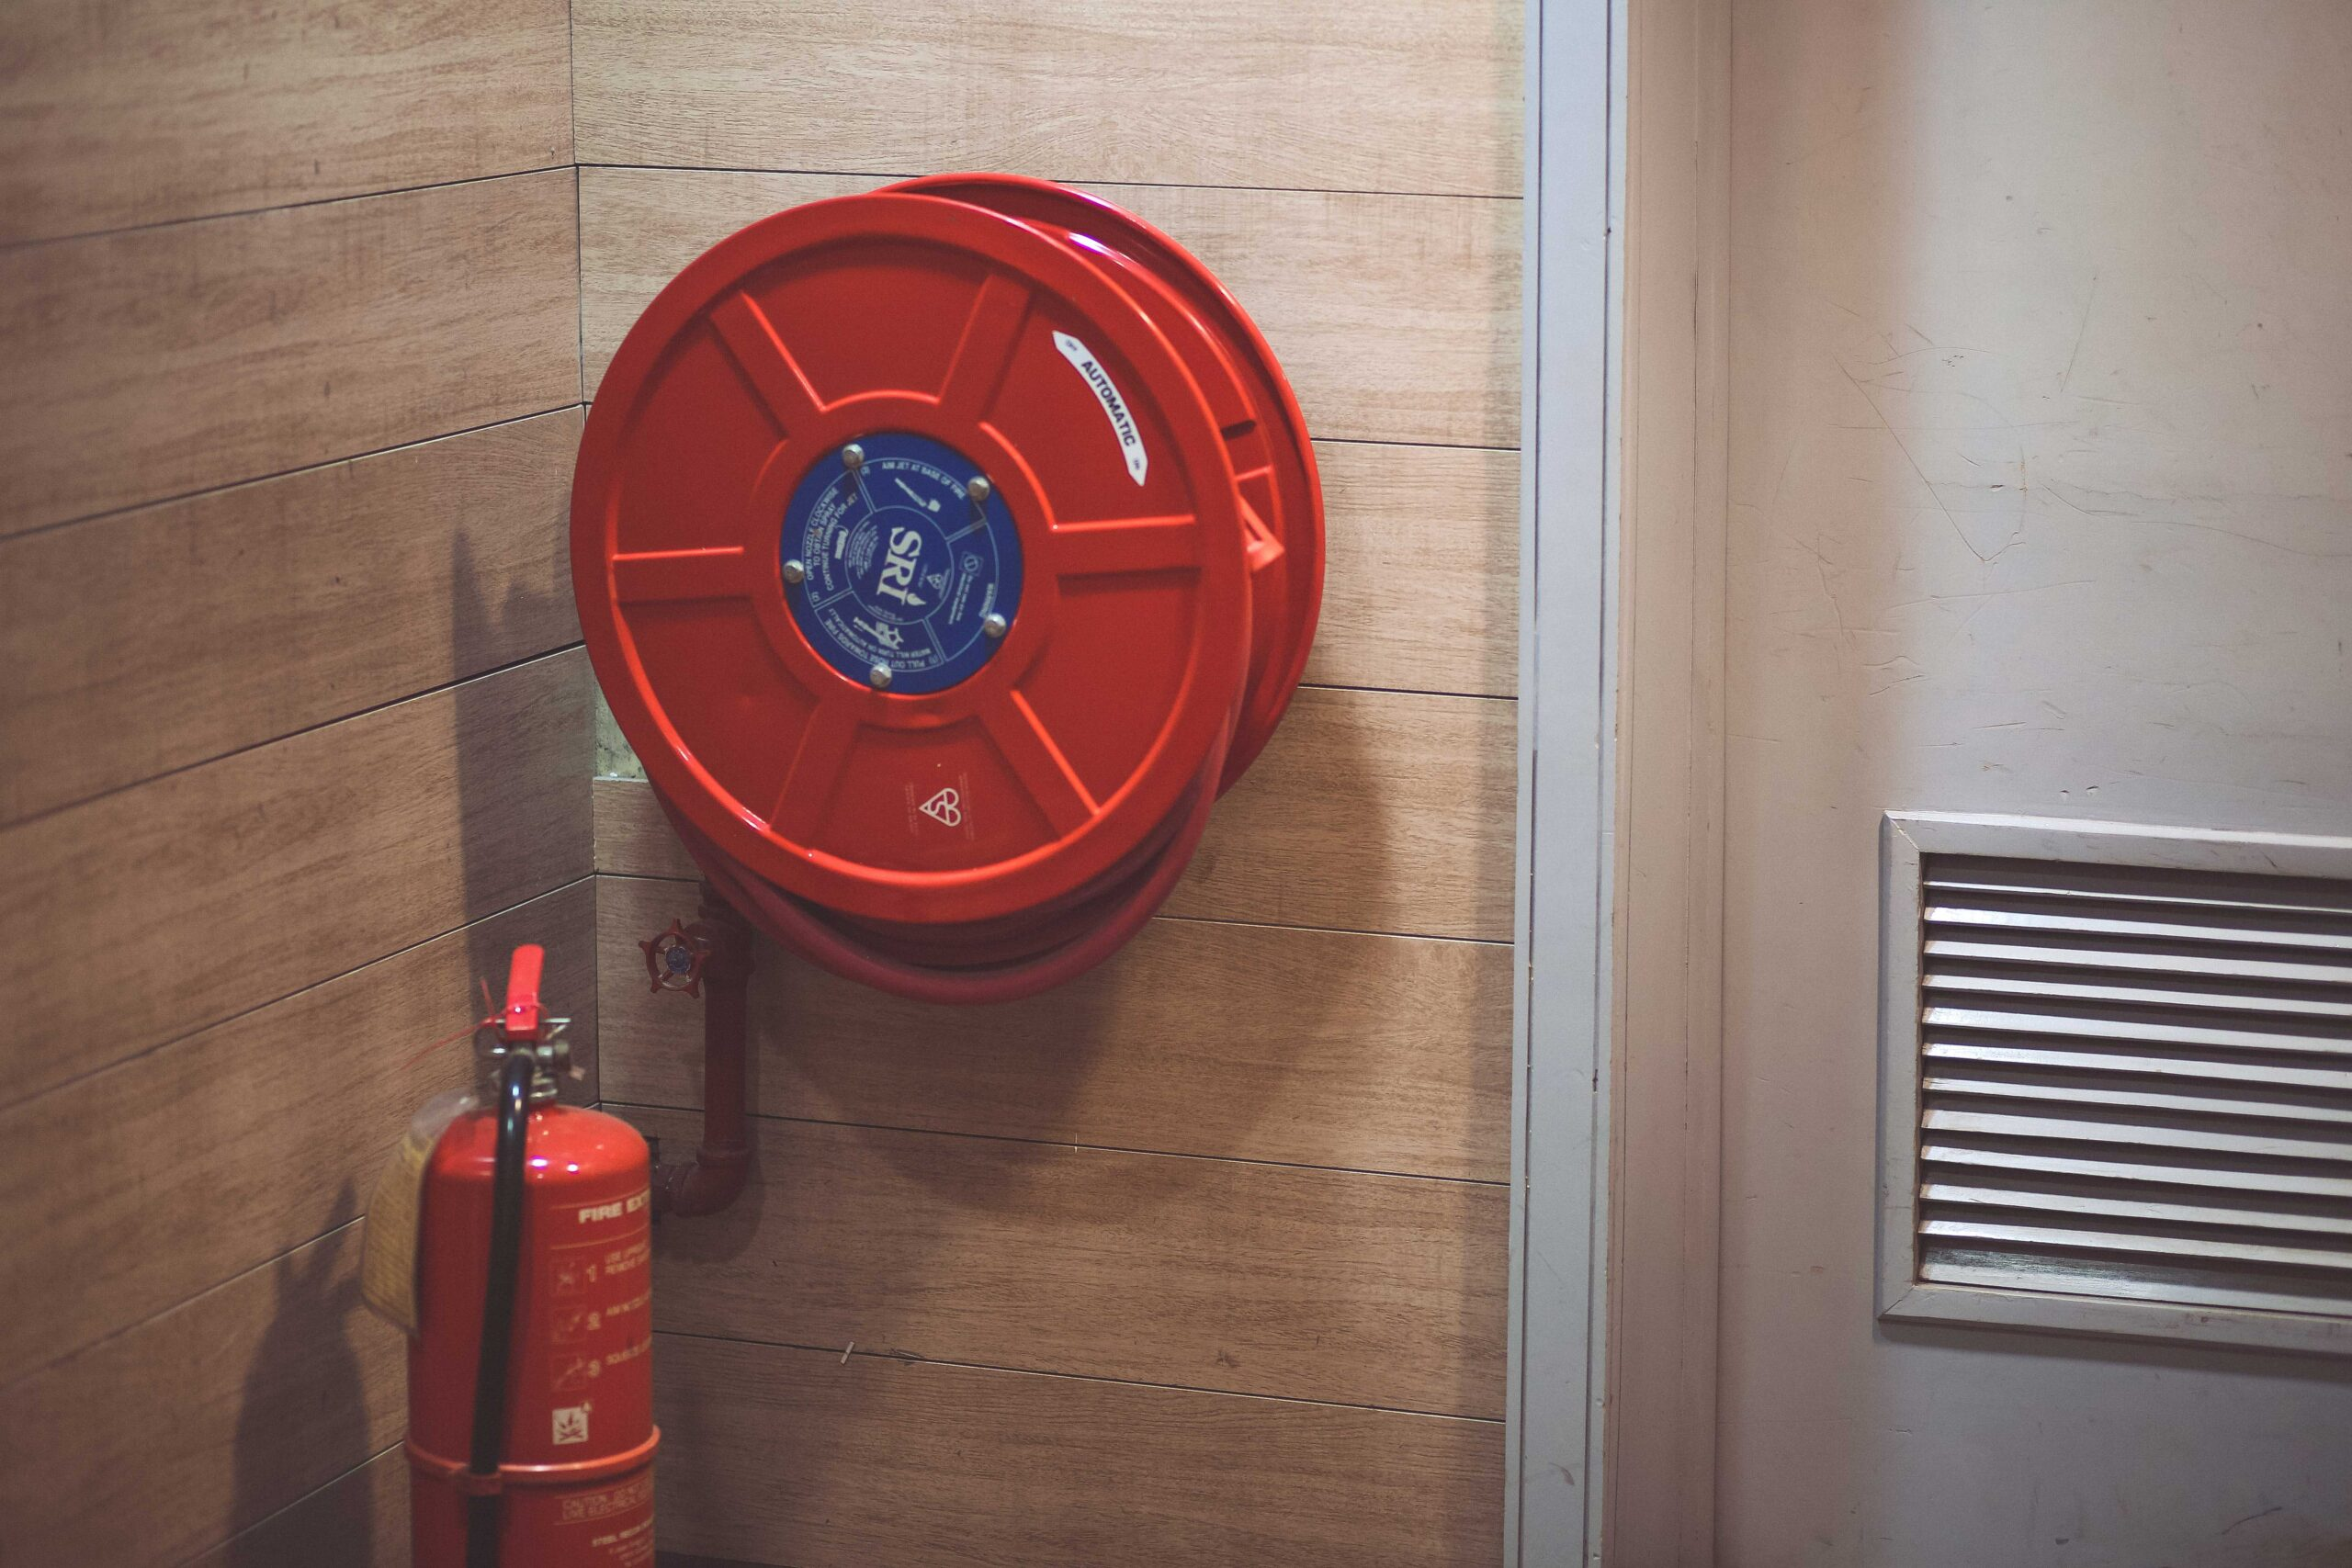 fire protection in the workplace